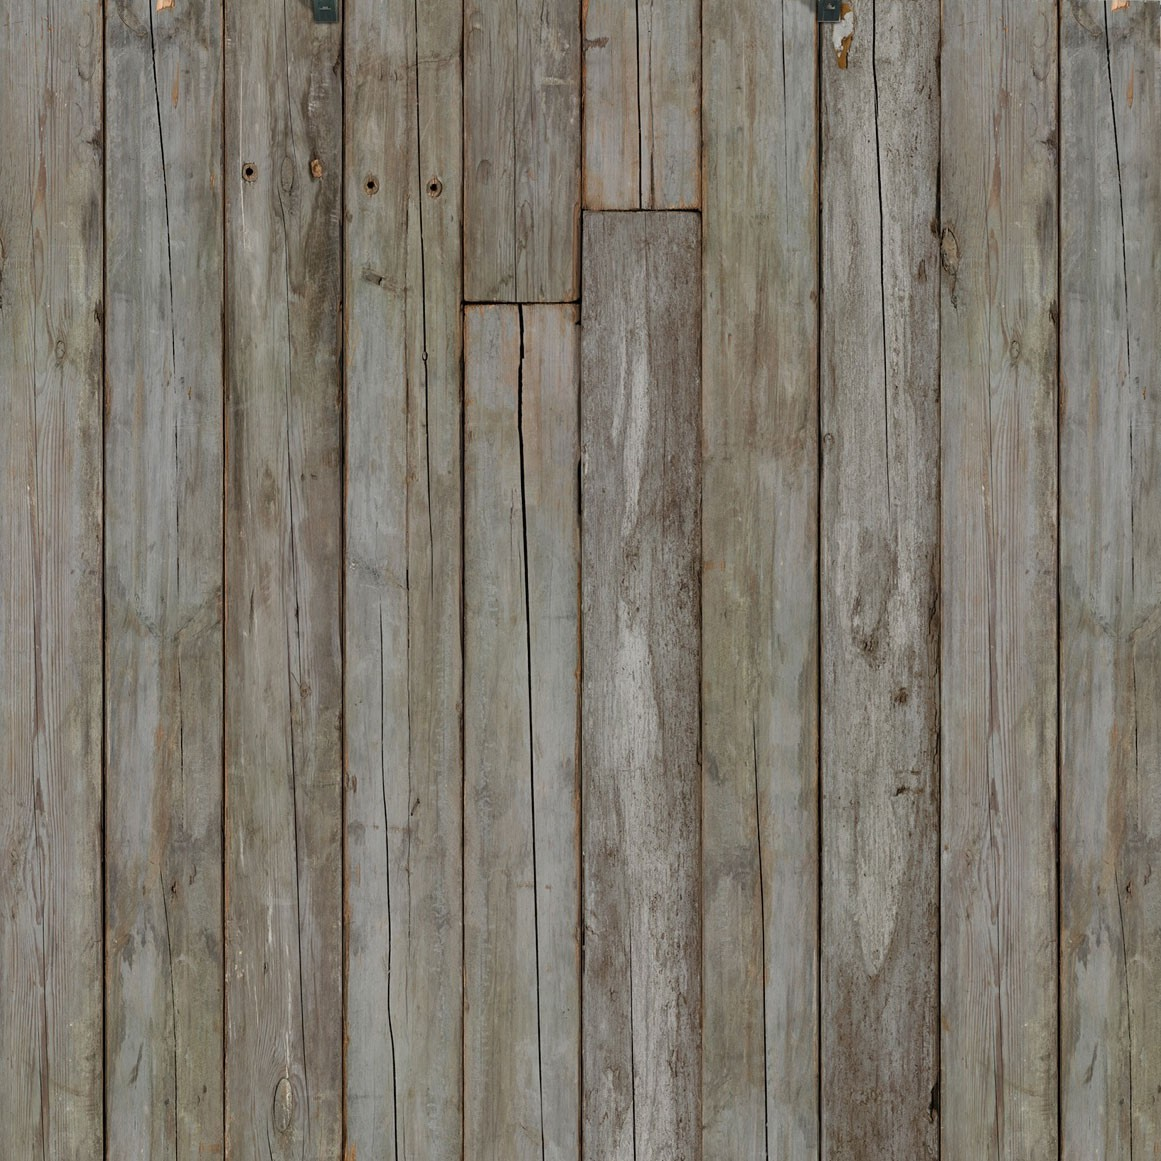 Scrapwood 14 Wallpaper Rustic Wood Effect